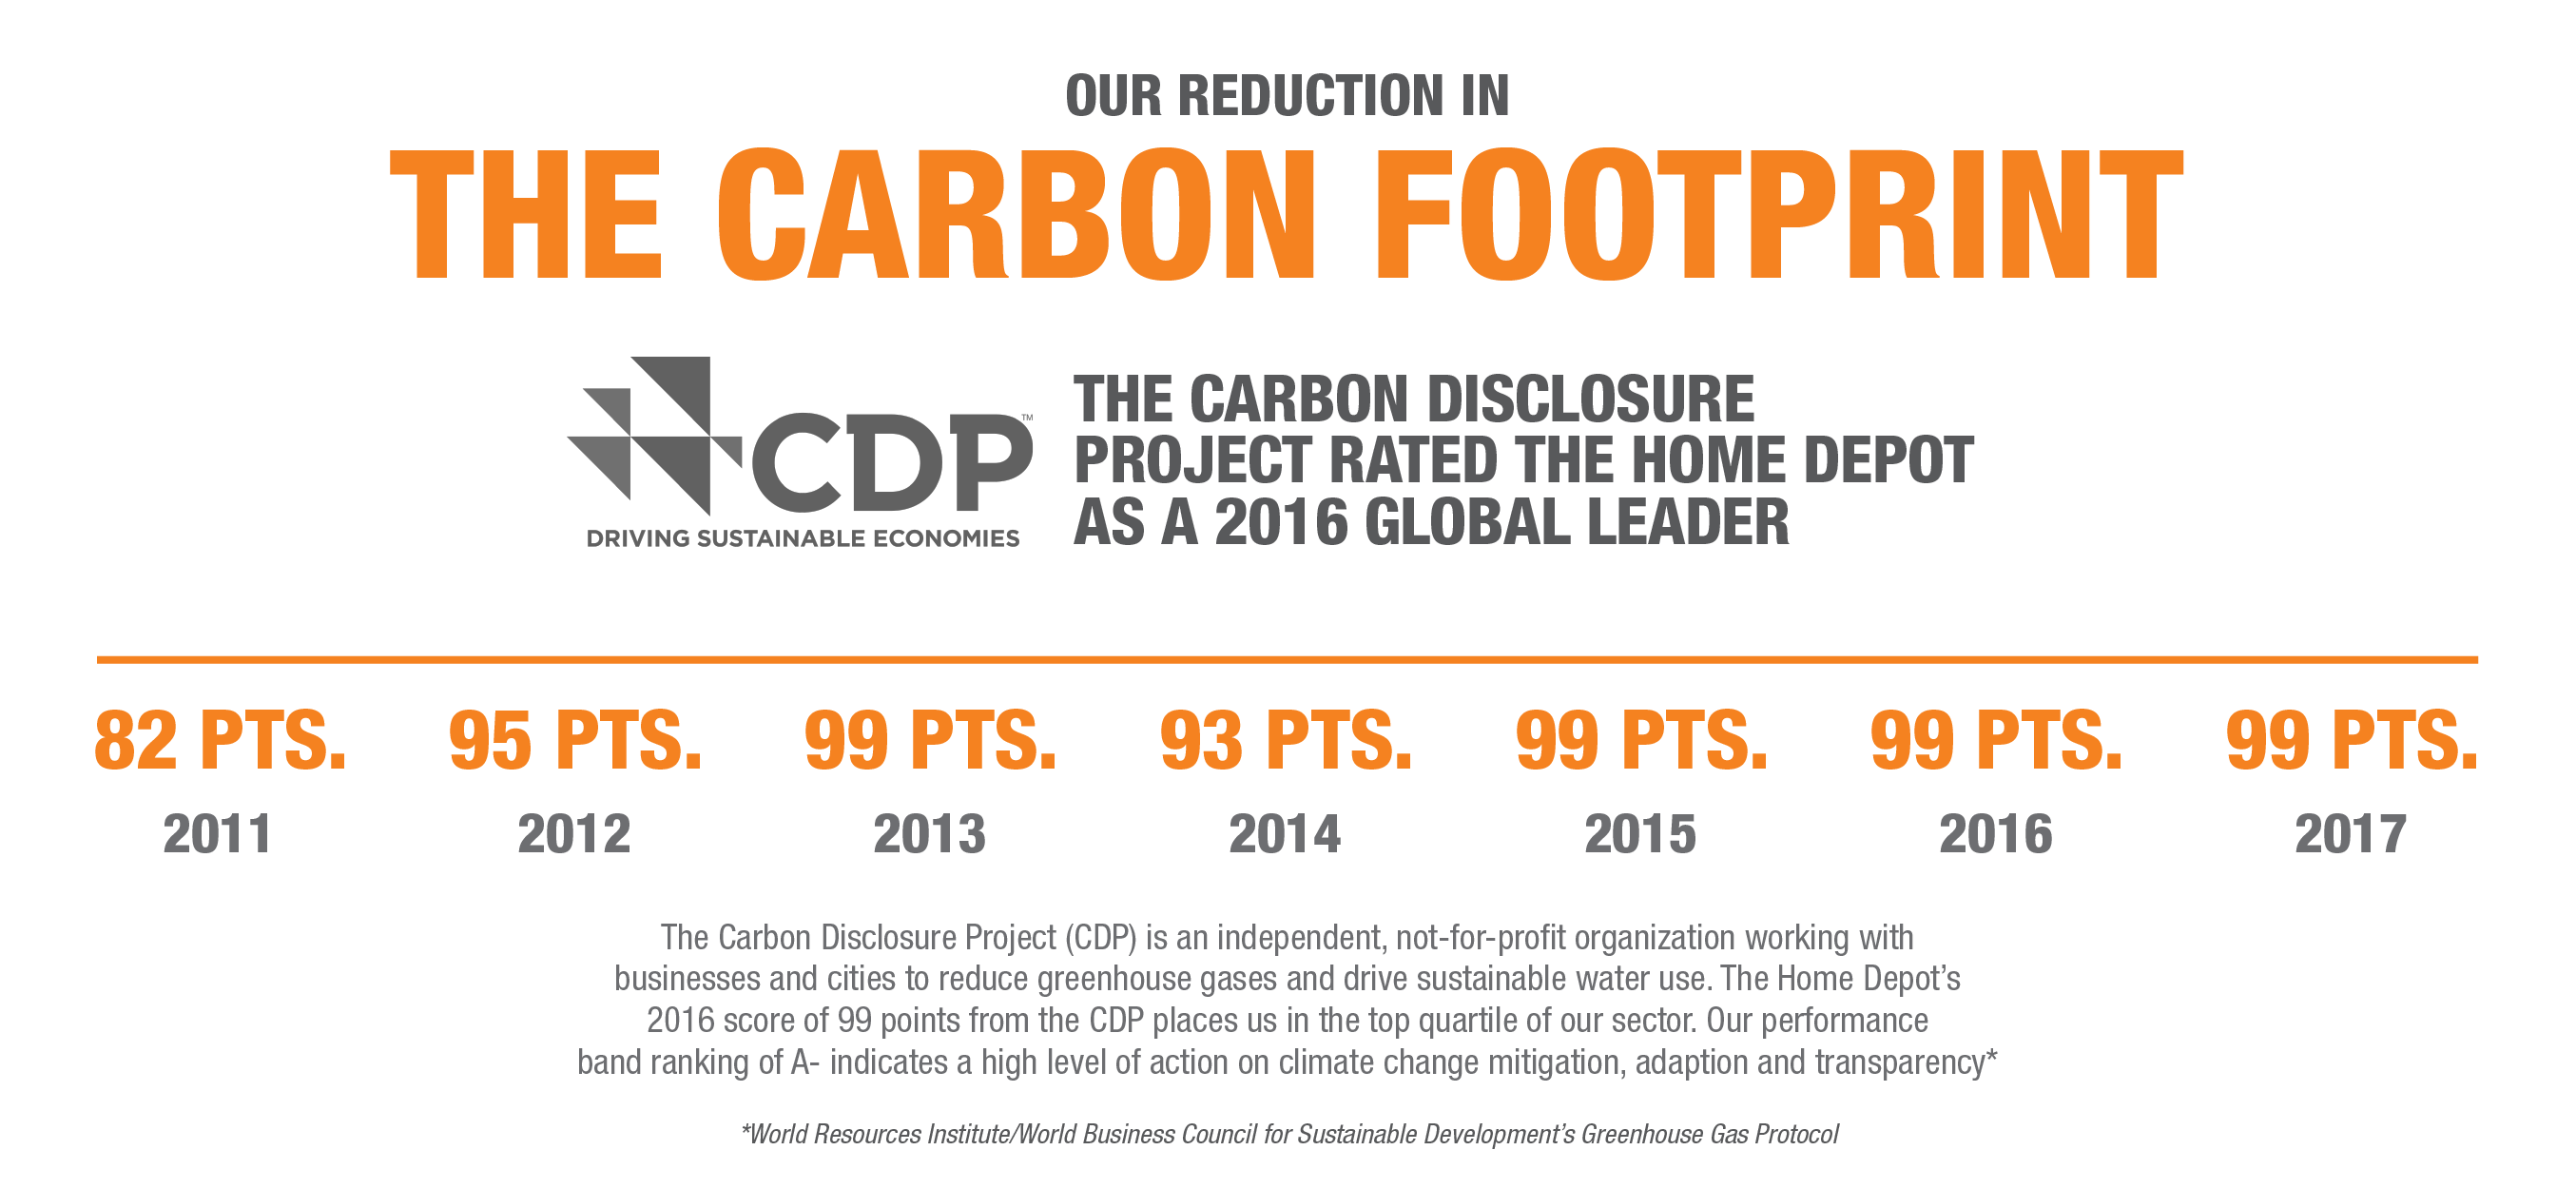 Carbon Footprint Timeline